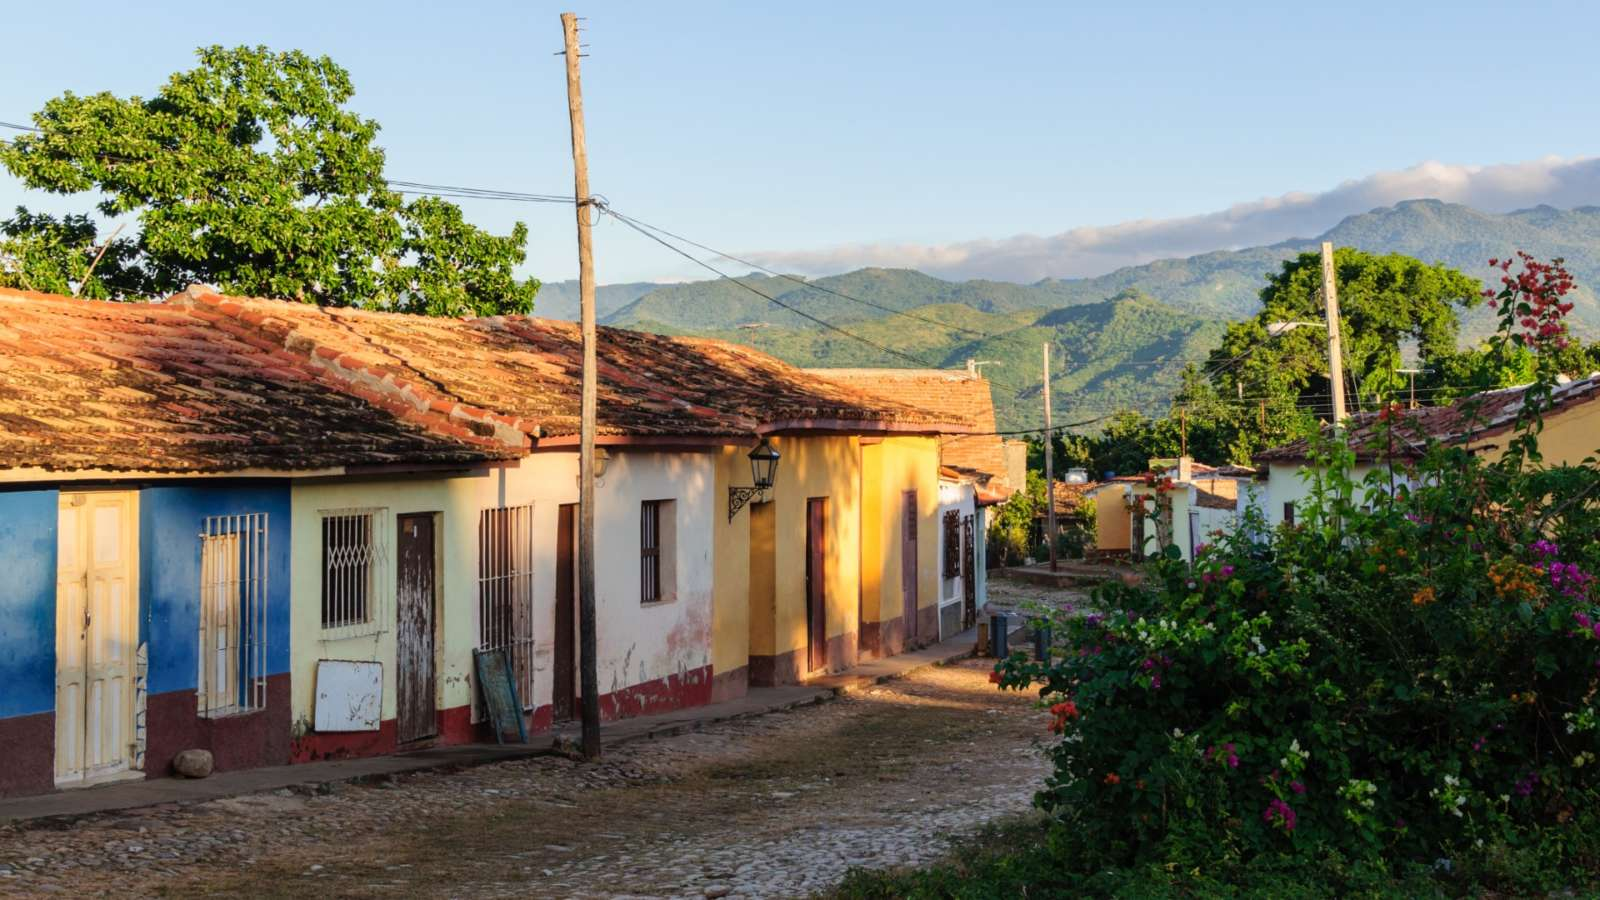 Street in Trinidad, Cuba with Escambray mountains behind